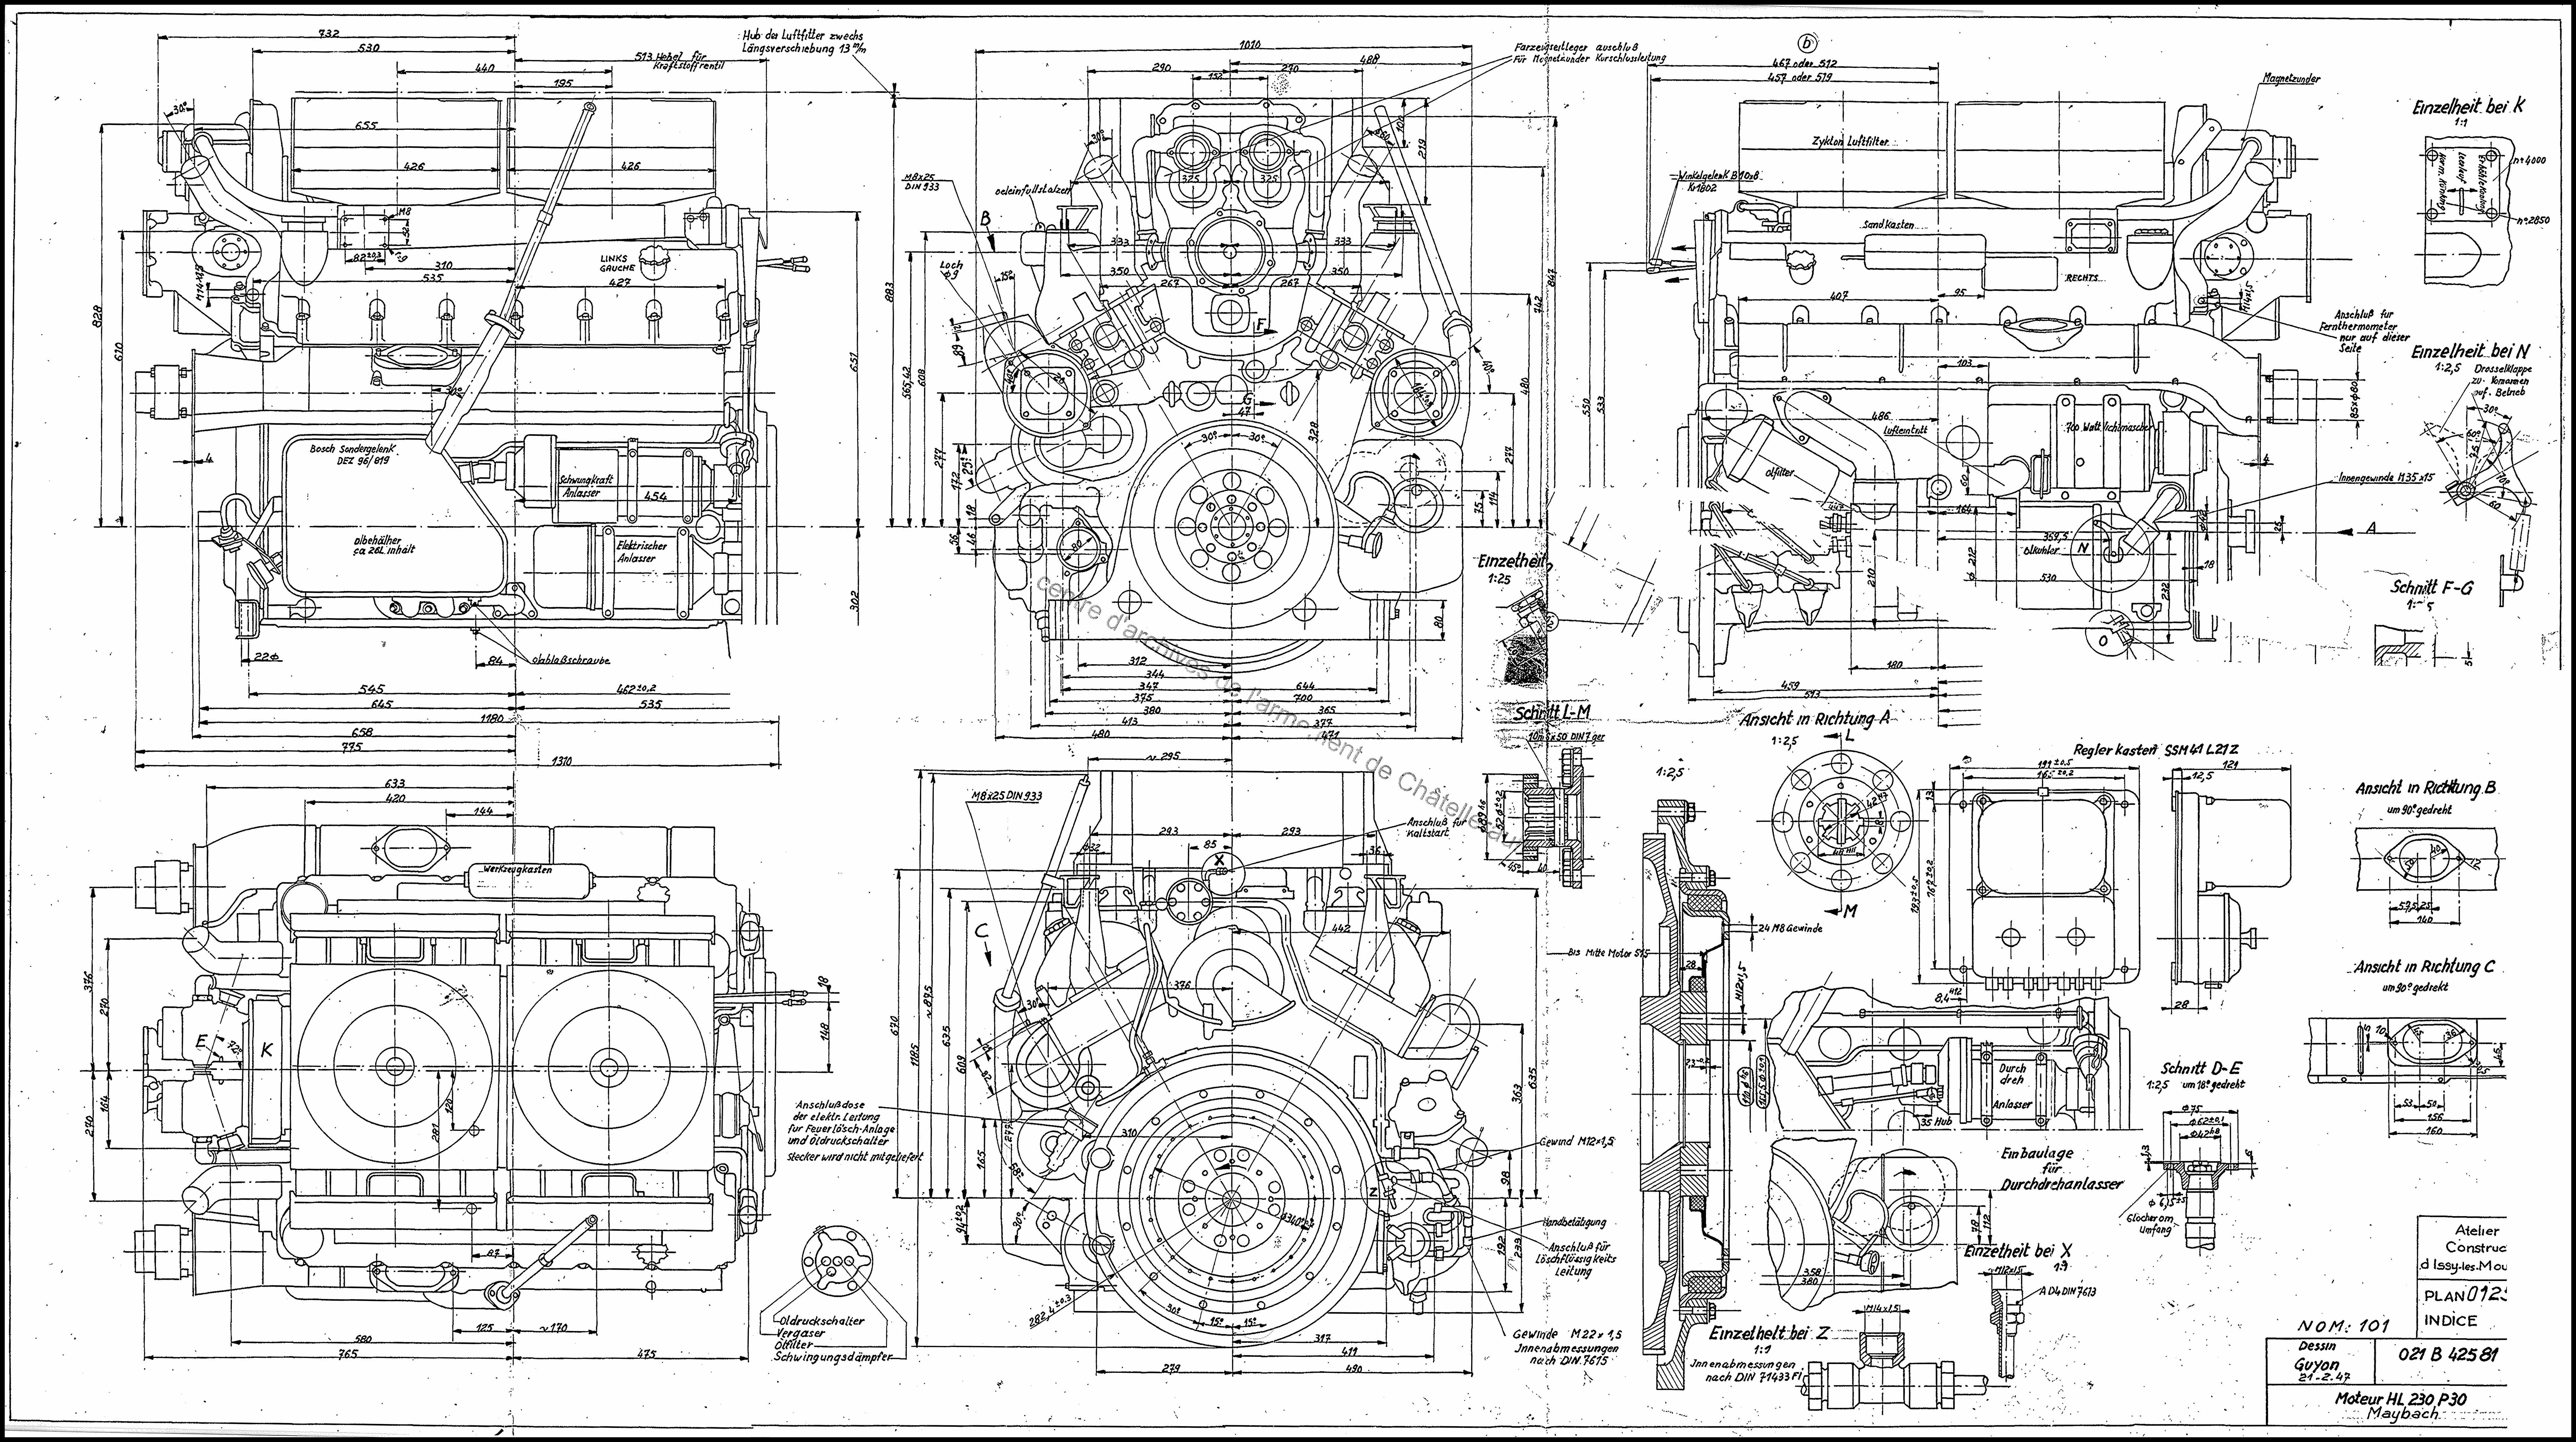 any idea how to model this engine from it s blueprint